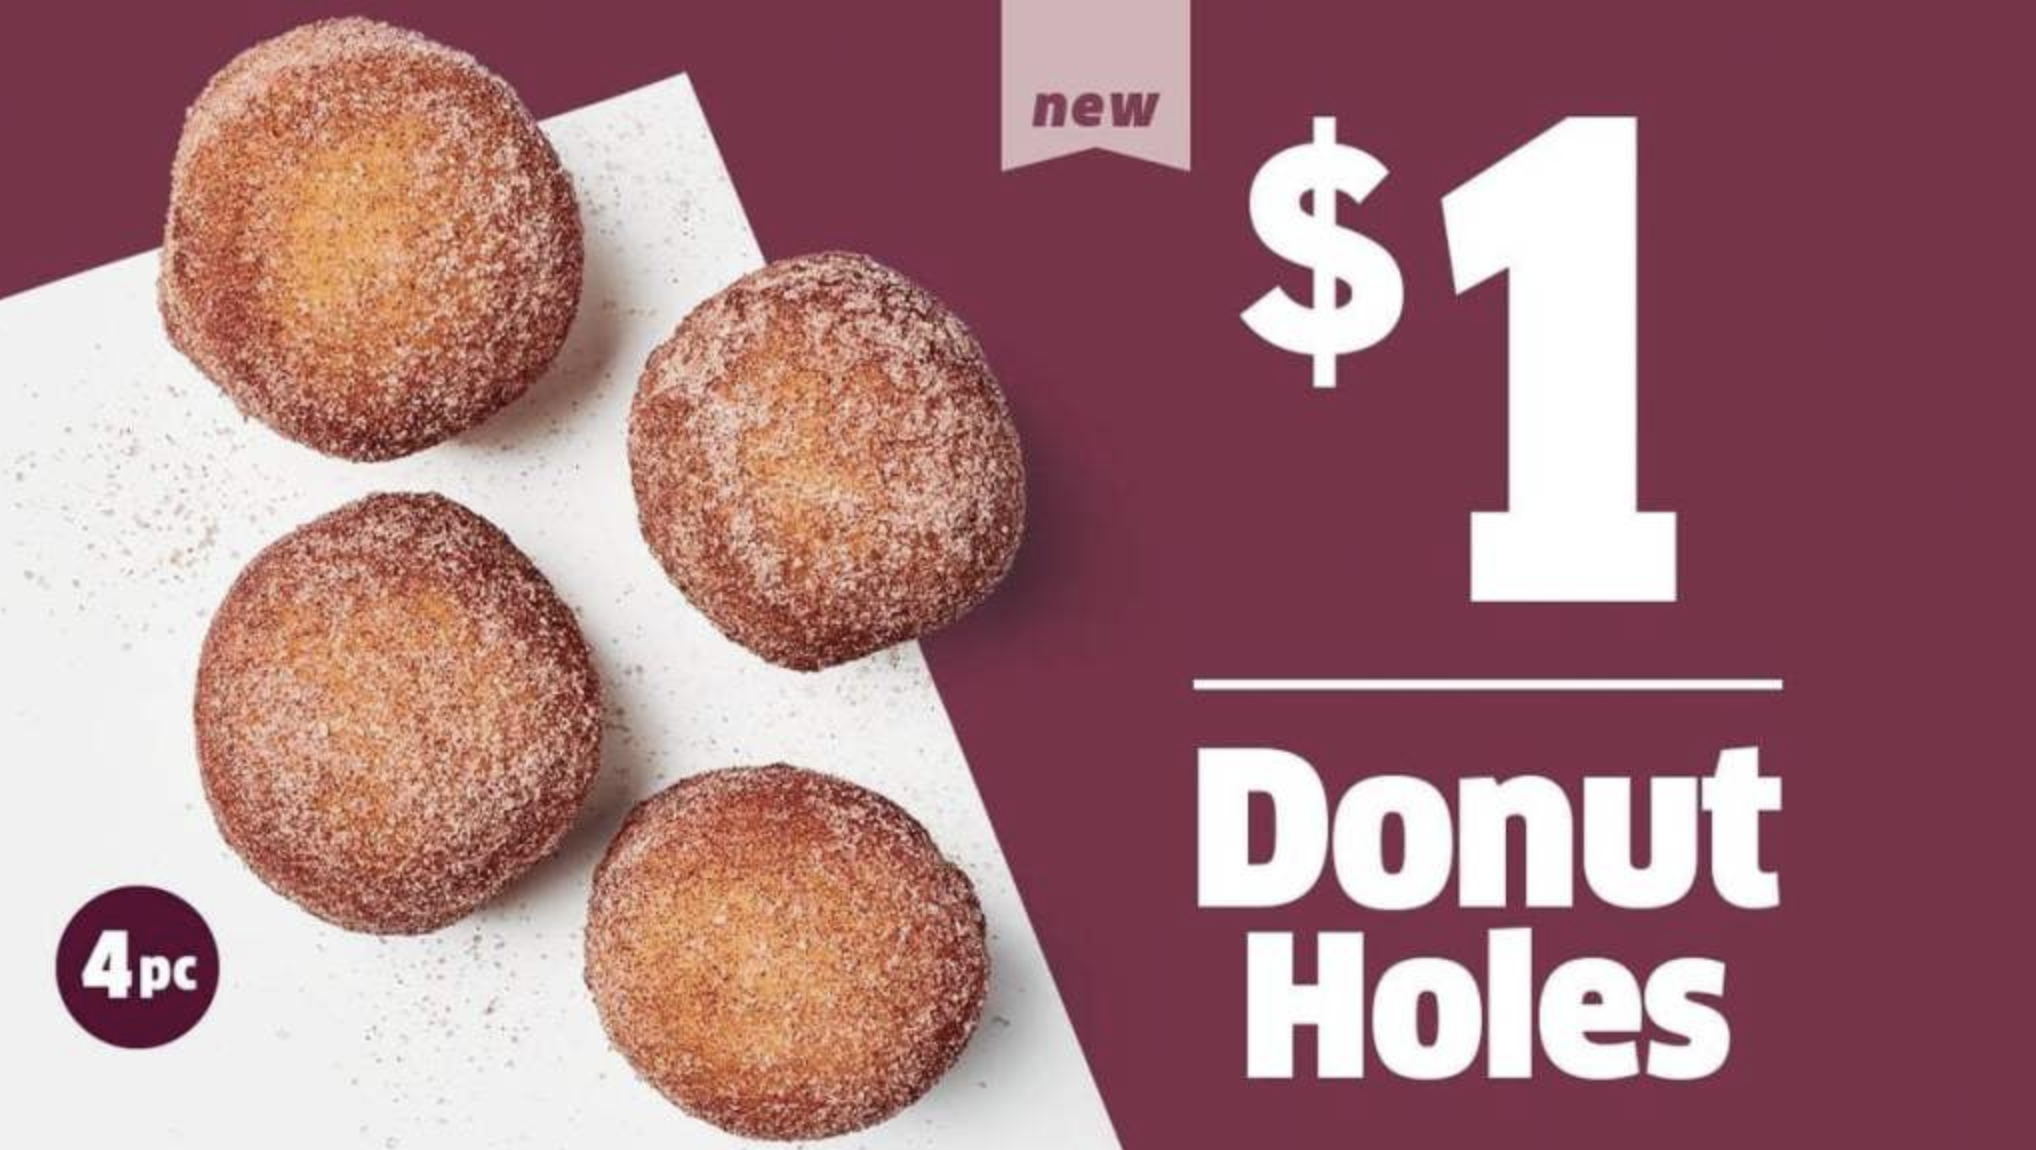 You Can Now Buy Donut Holes At Jack In The Box For $1